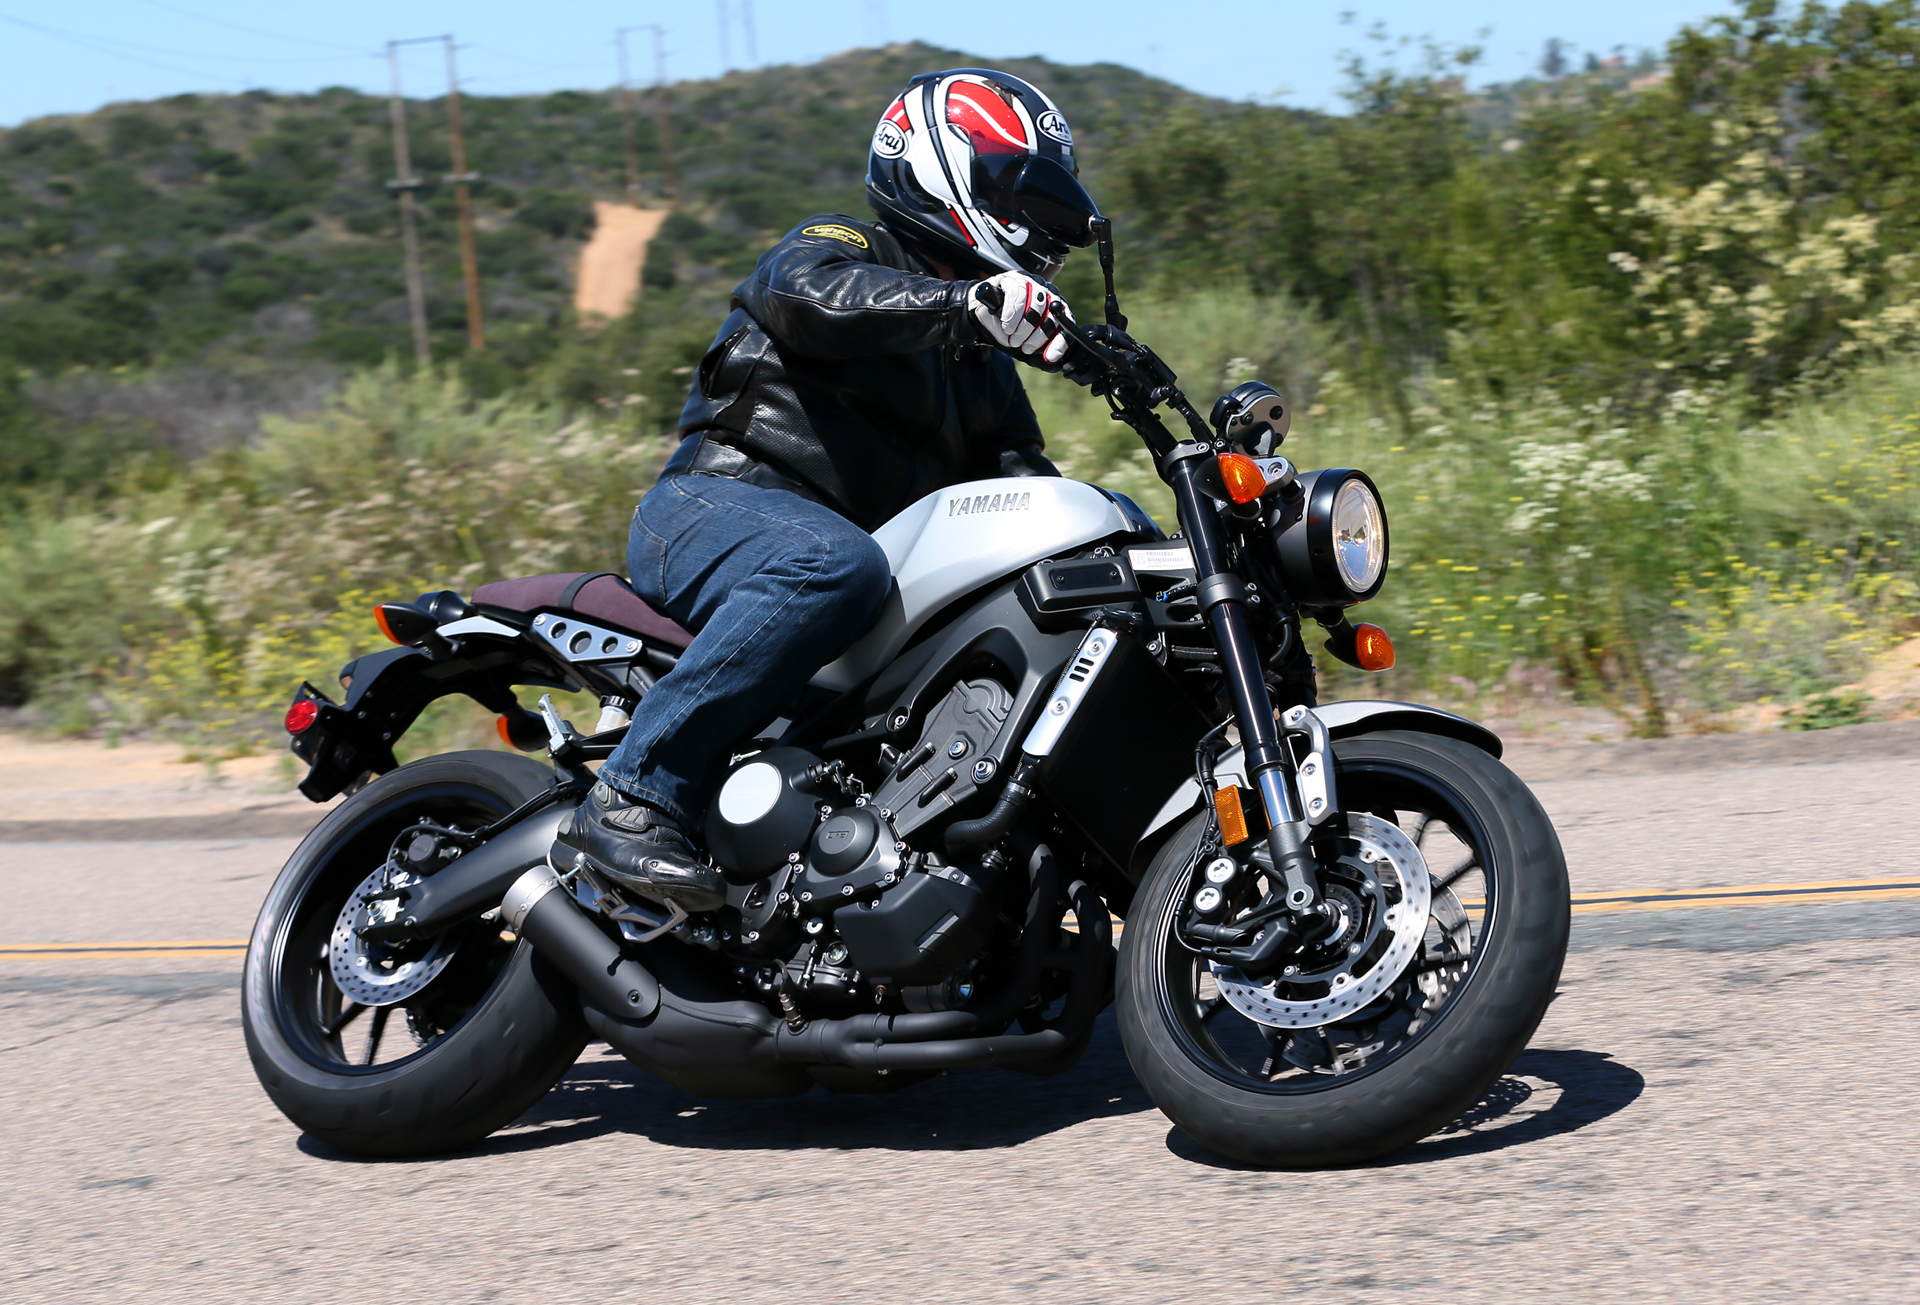 2016 Yamaha XSR900 MD First Ride